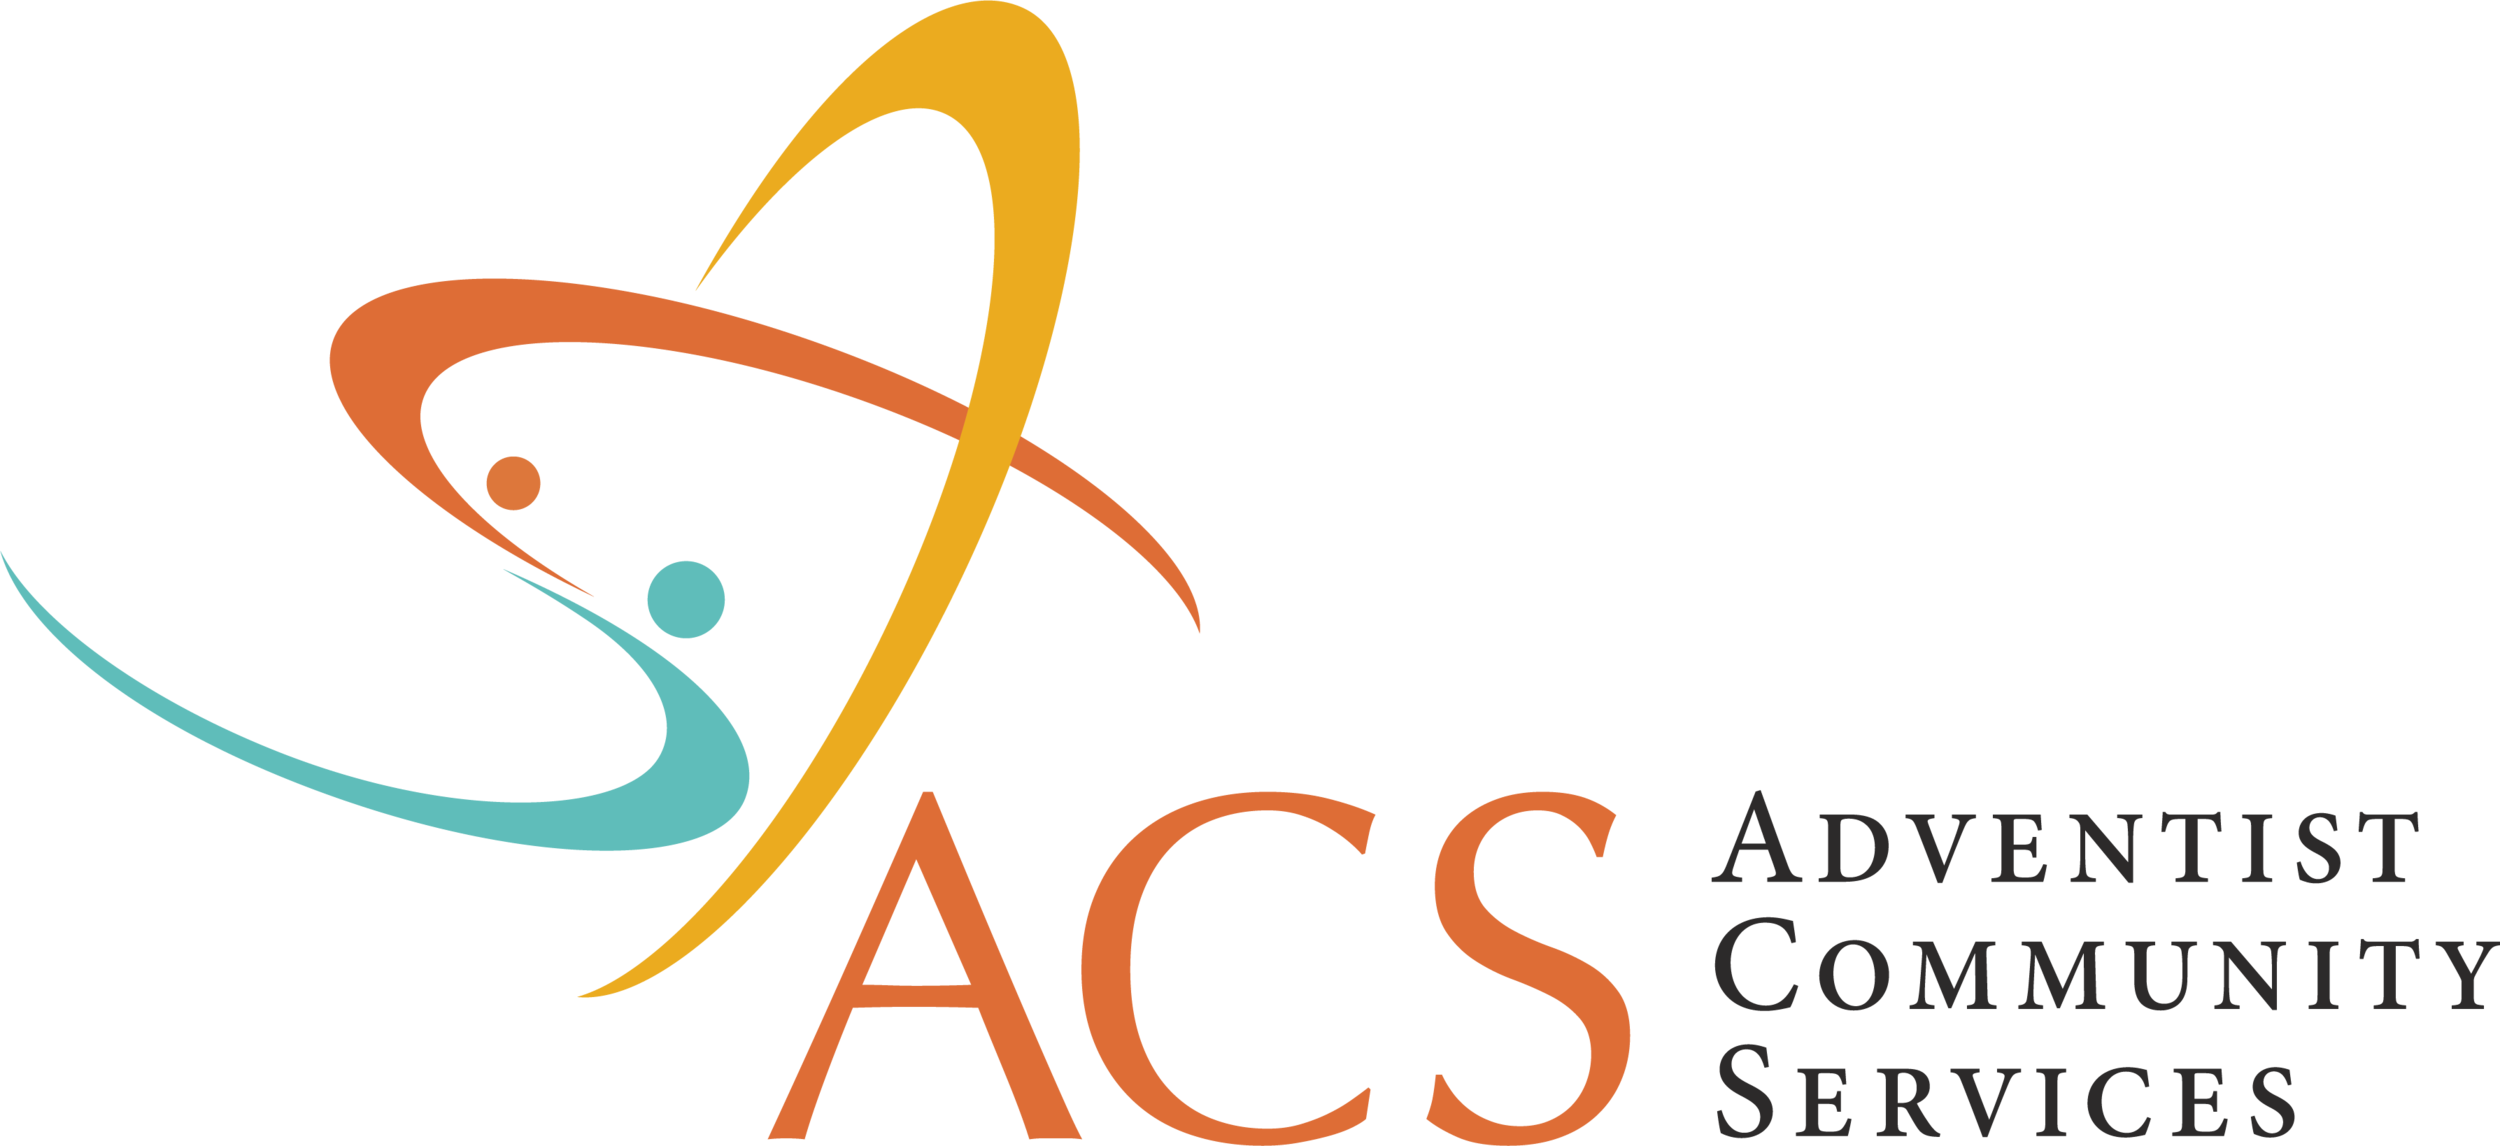 ACS_logoincolor.png